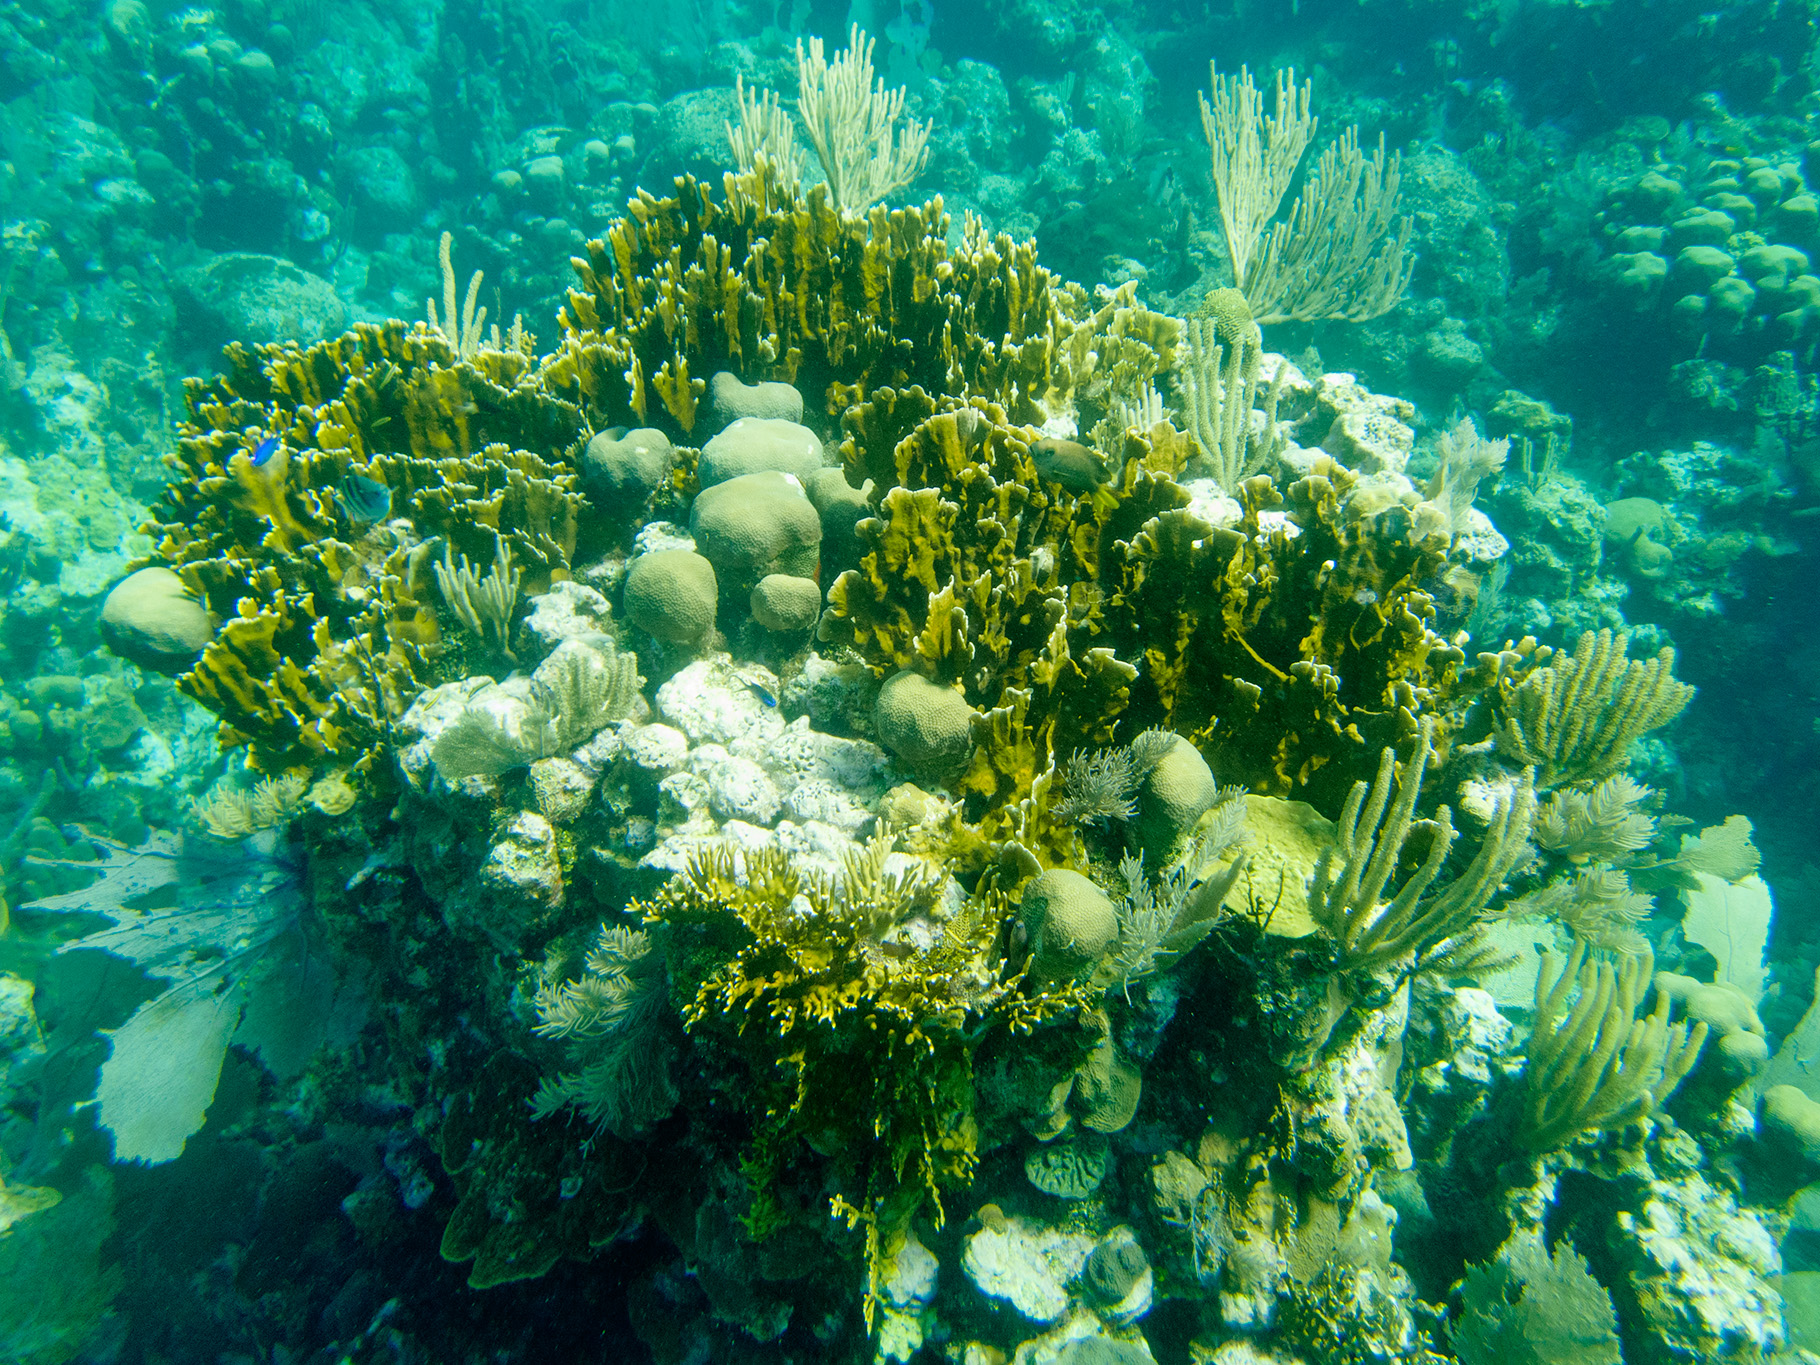 The coral in this area was incredible; very colorful and varied with many different kinds of coral growing in the ocean along the MesoAmerican Reef.